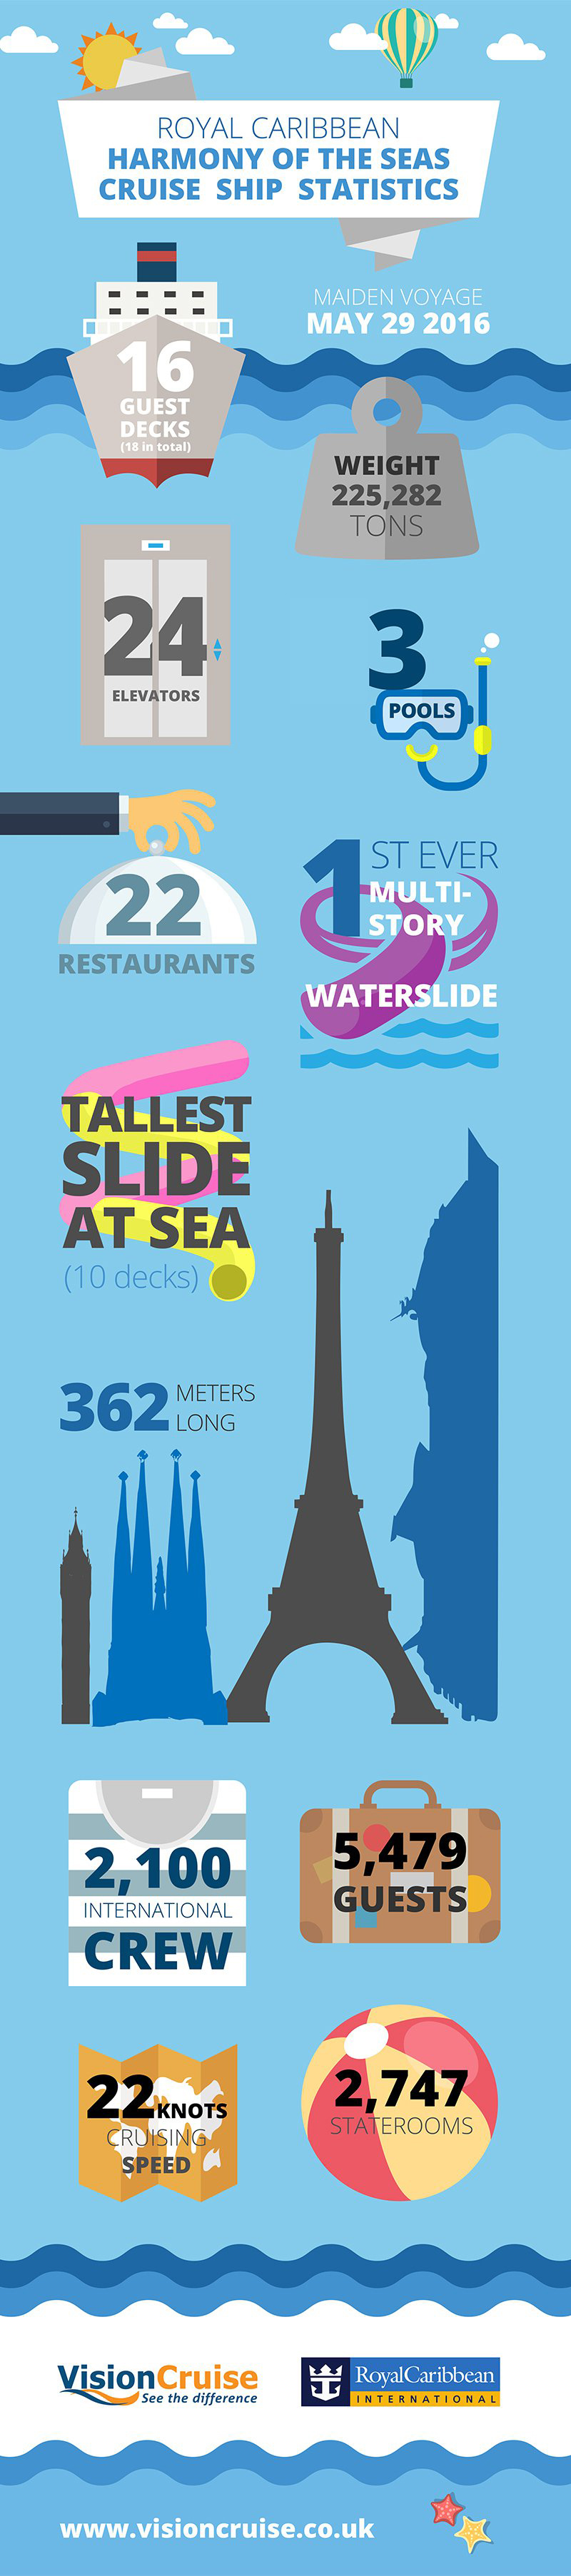 How Big is Harmony of the Seas? See our infographic to find out!.